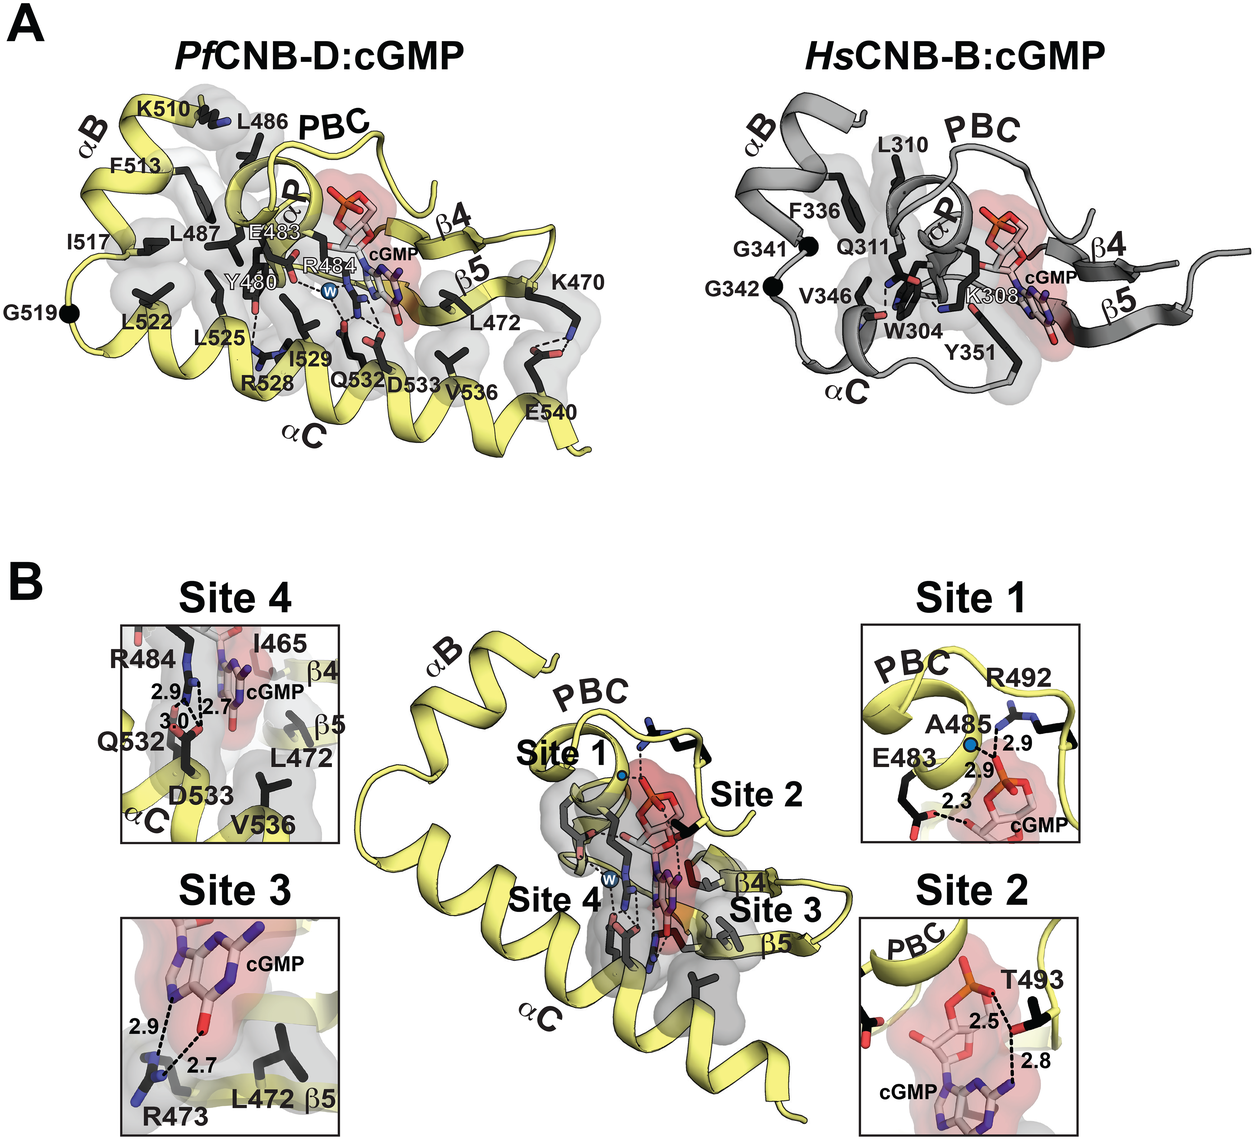 Structural comparison between <i>Pf</i>CNB-D and CNB-B and cGMP binding pocket of <i>Pf</i>CNB-D.